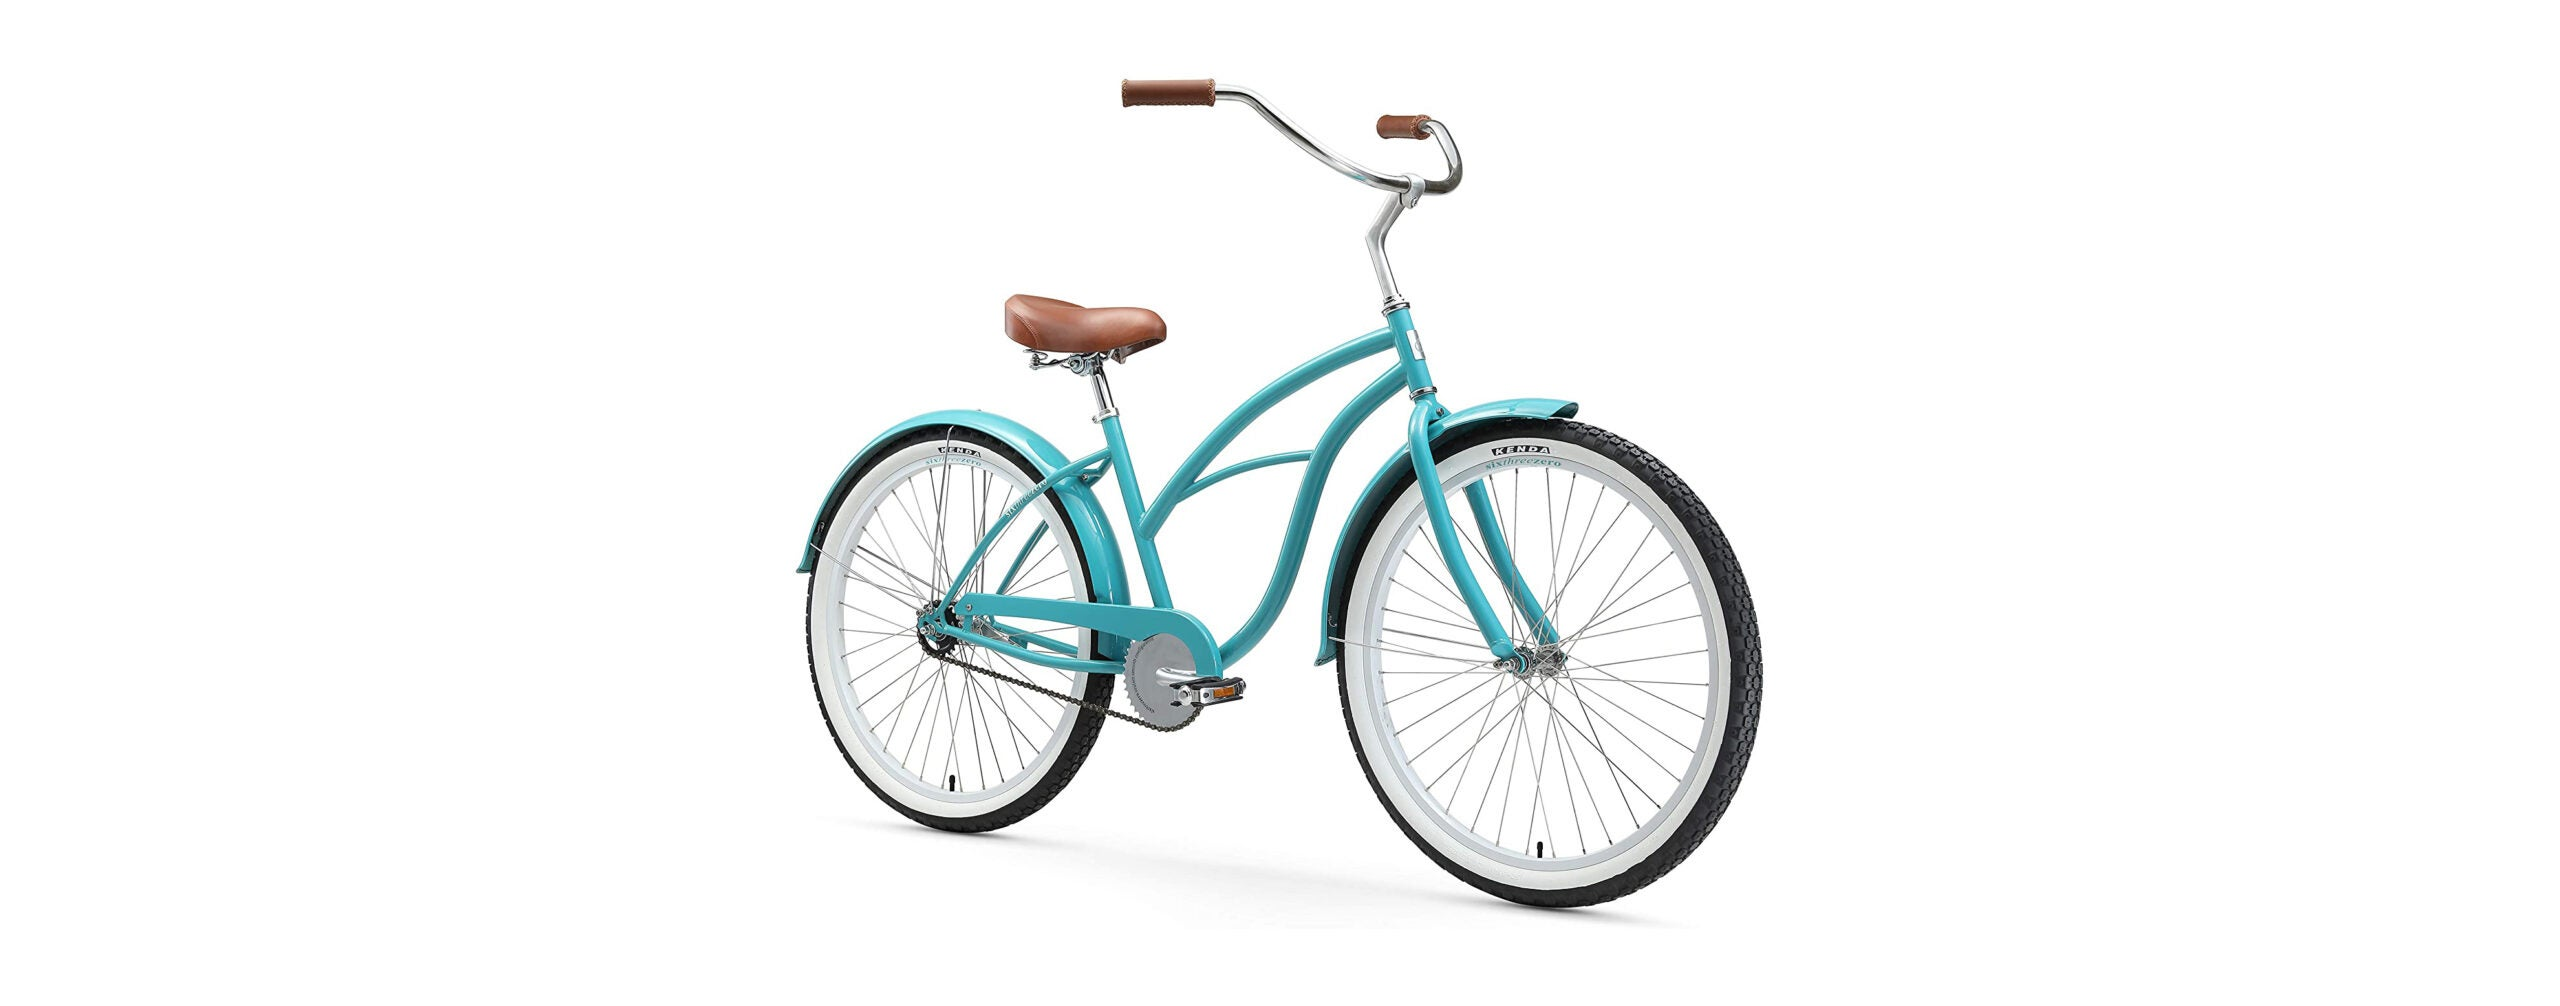 The Best Women's Comfort Bike (Review and Buying Guide) in 2021